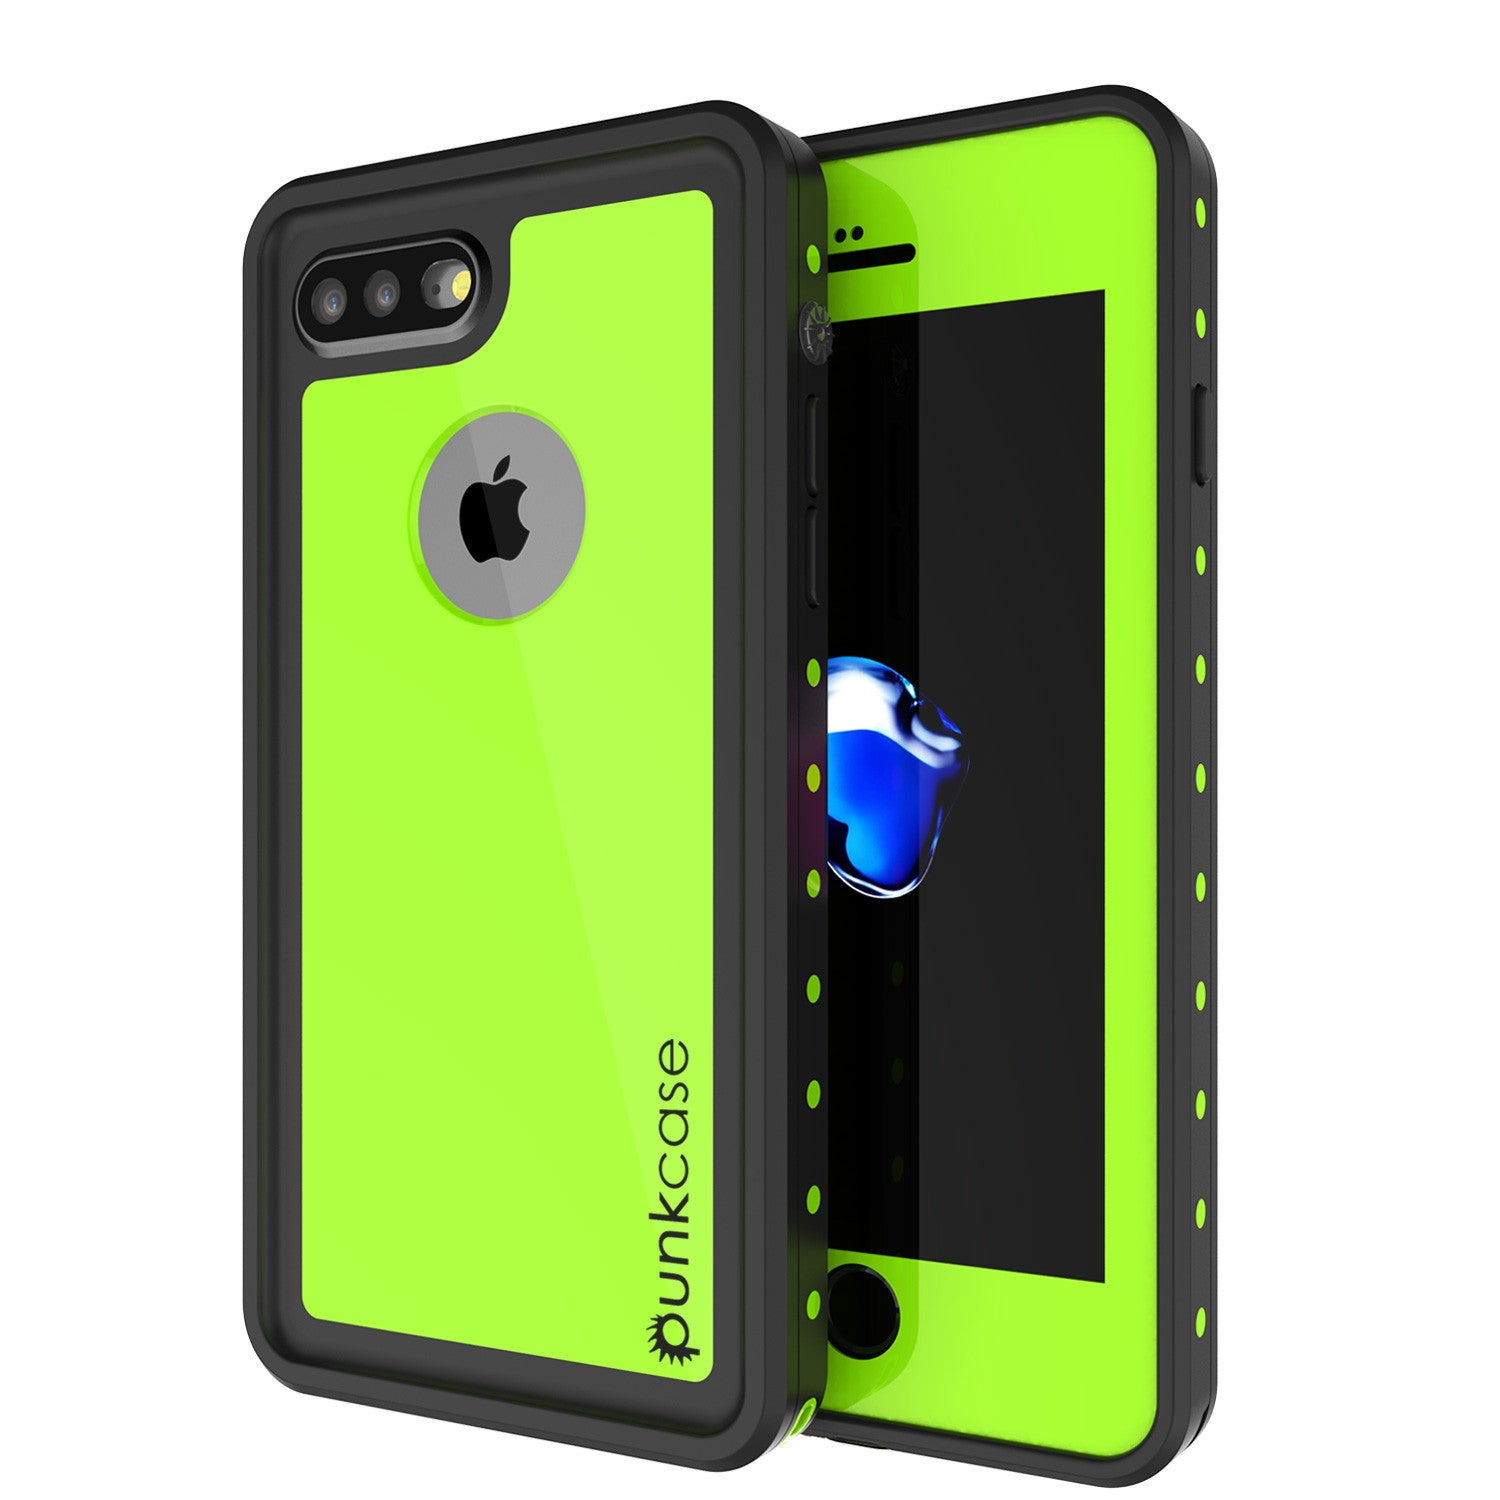 iPhone 8+ Plus Waterproof Case, Punkcase [StudStar Series] [Light Green] [Slim Fit] [Shockproof] [Dirtproof] [Snowproof] Armor Cover